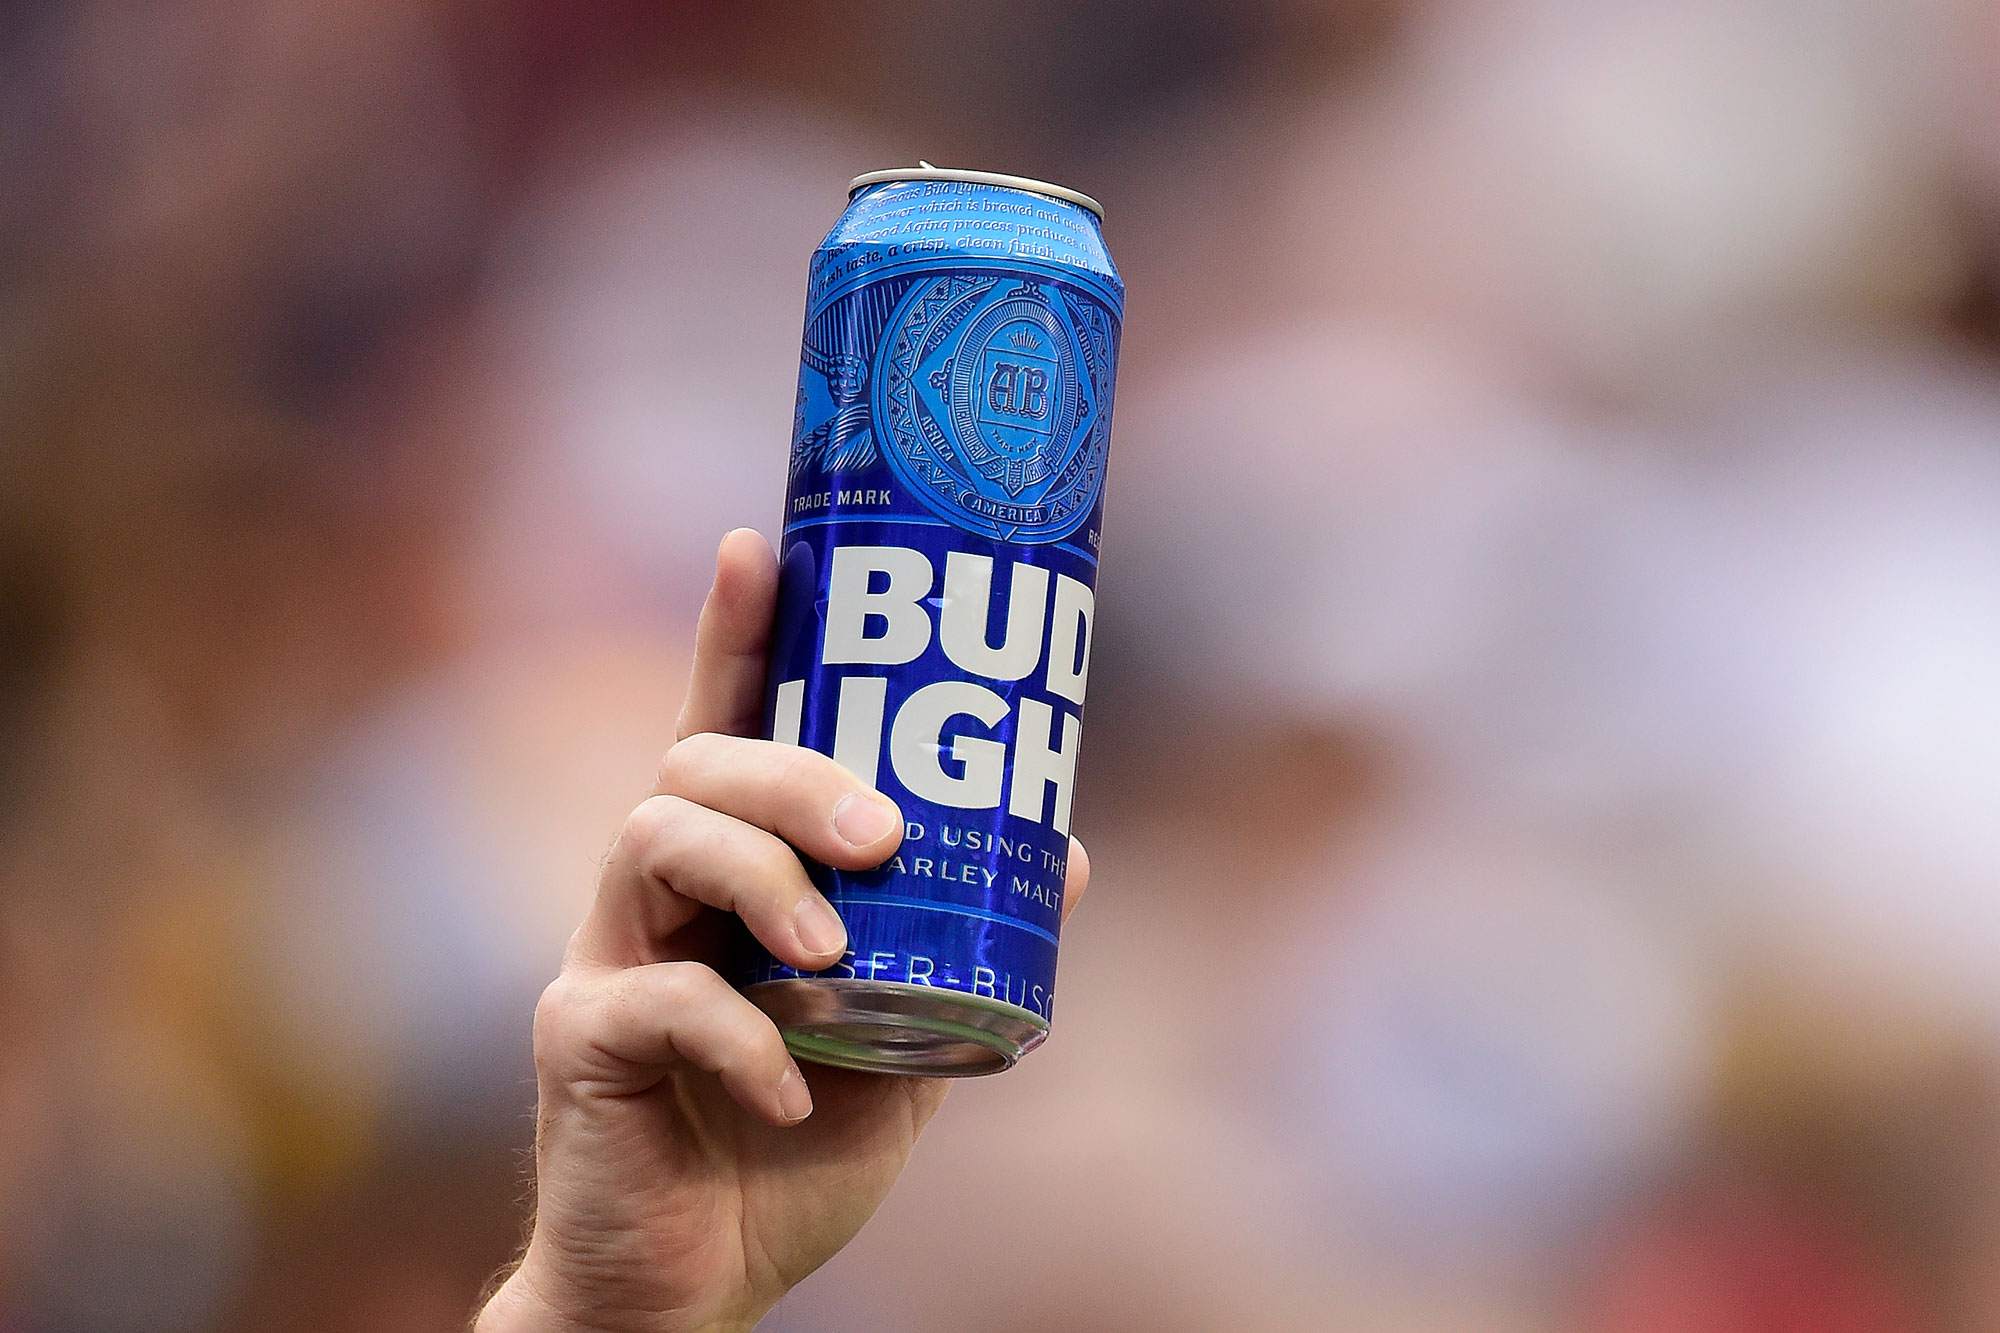 A can of Bud Light